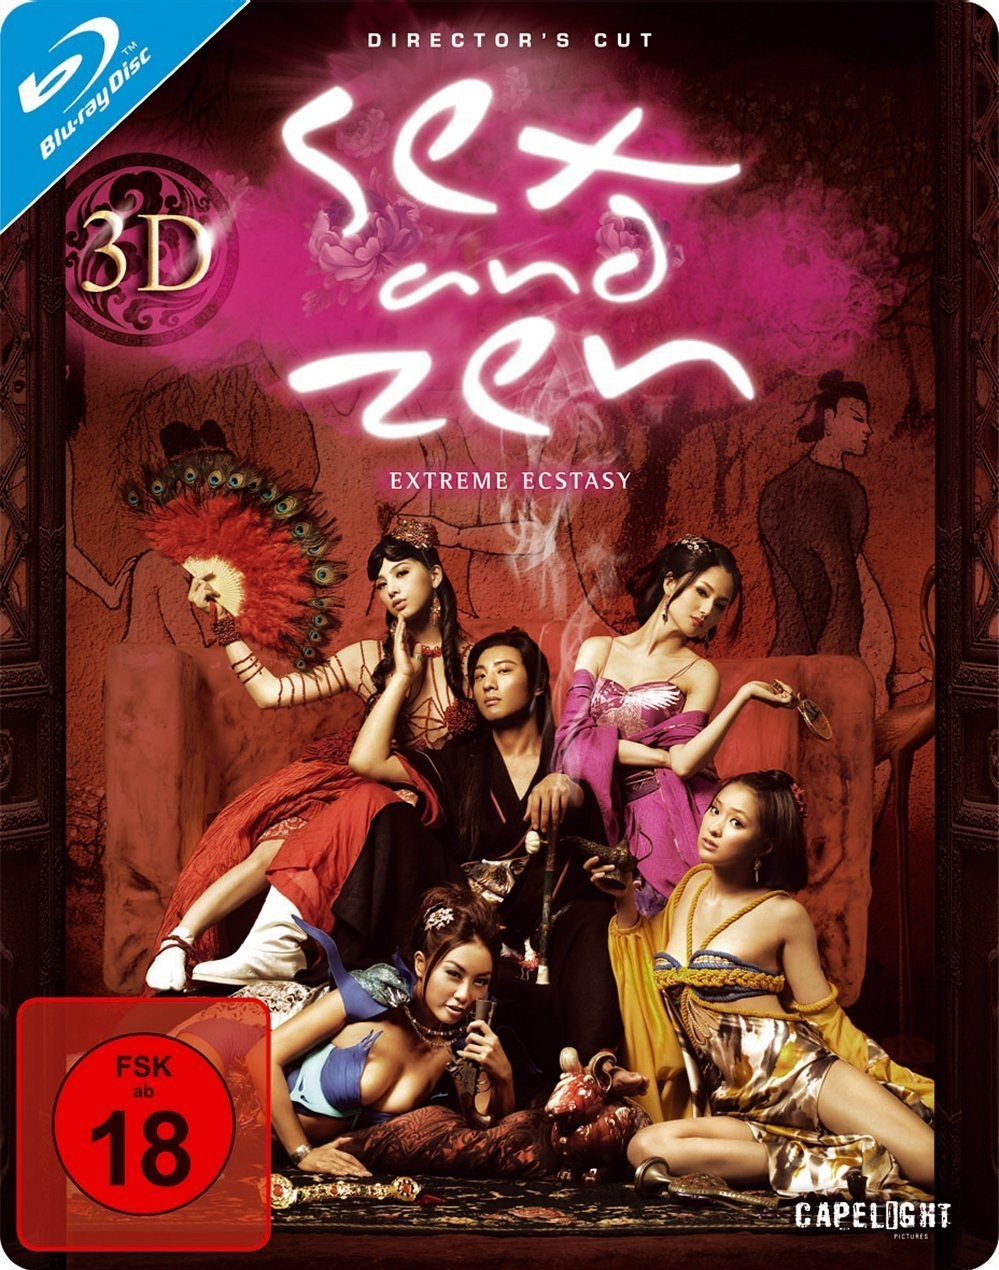 3d sex and zen extreme ecstacy full movie online